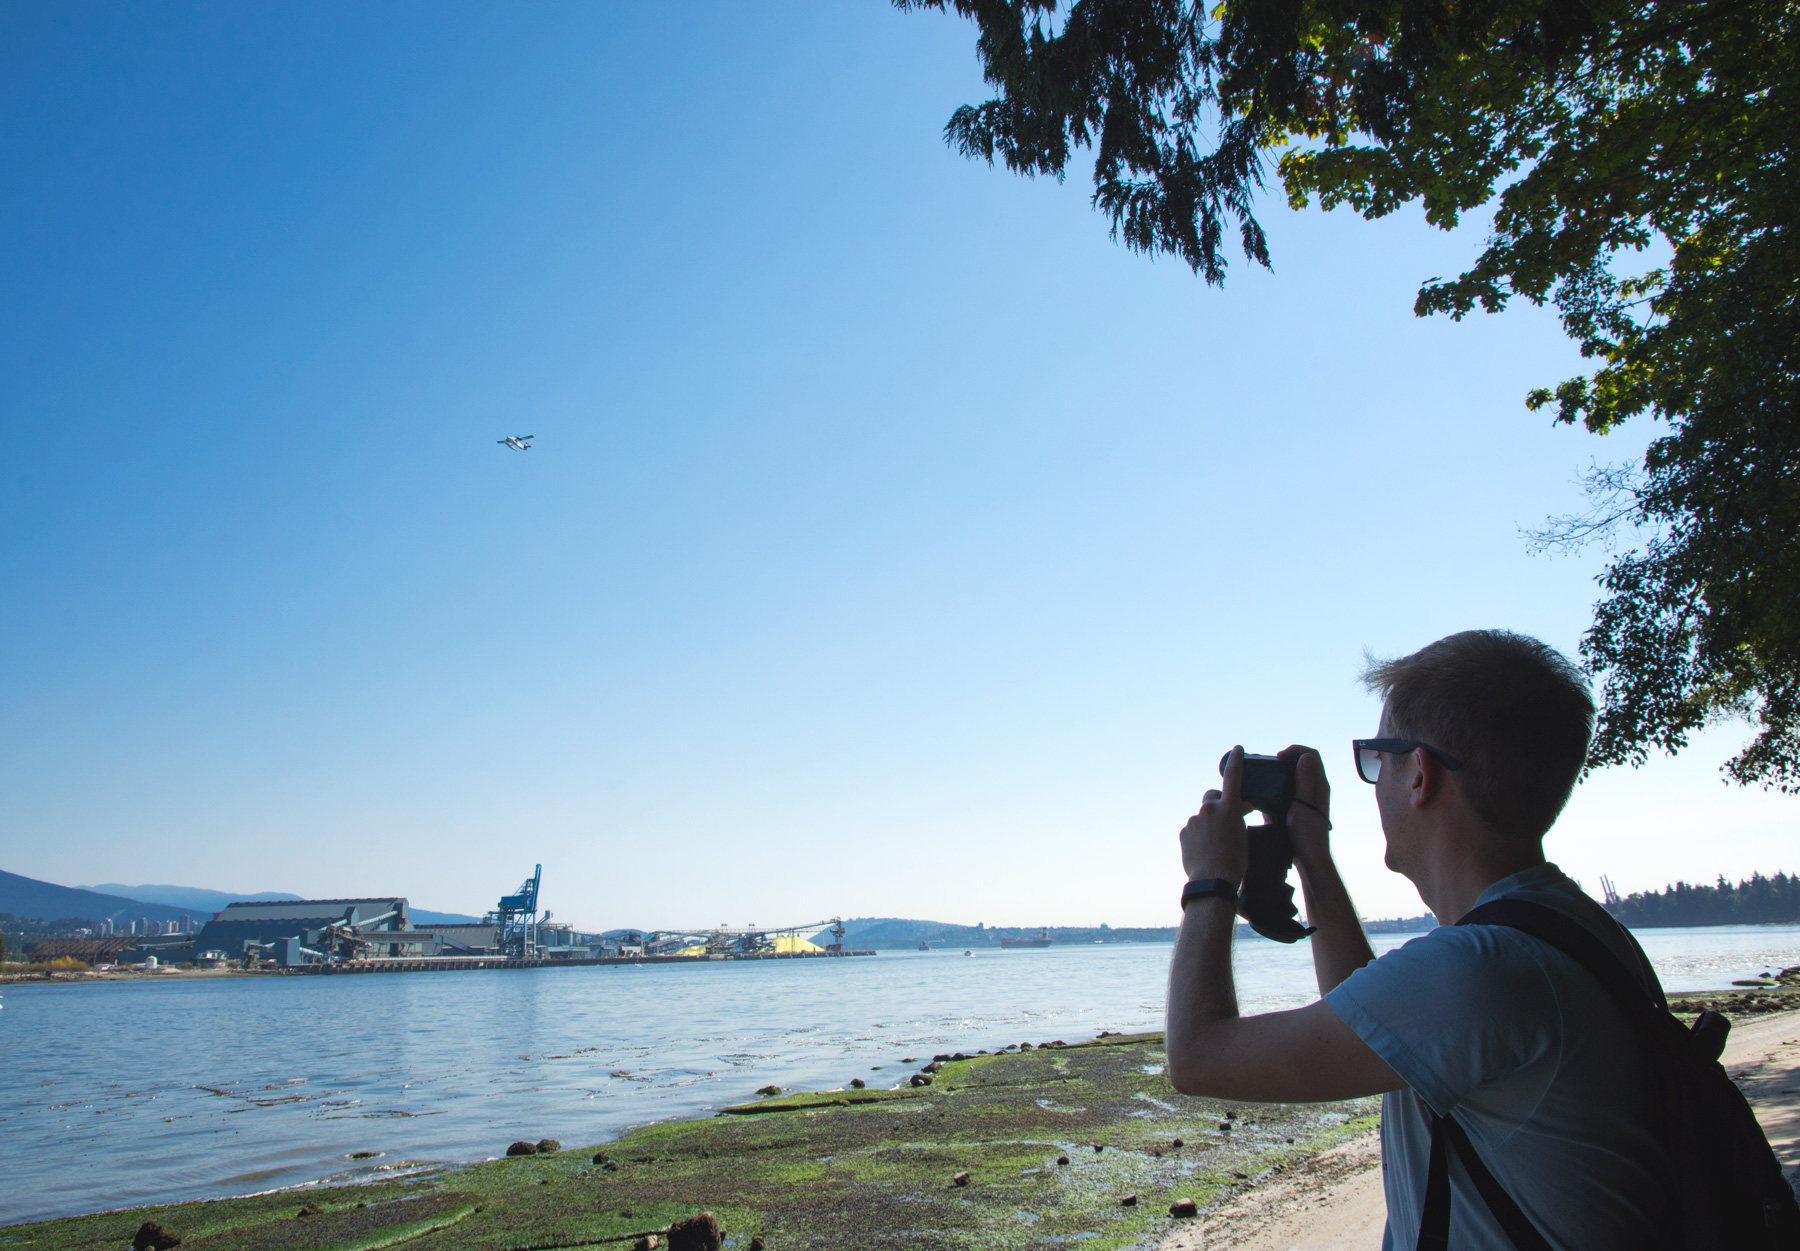 Man photographing seaplane